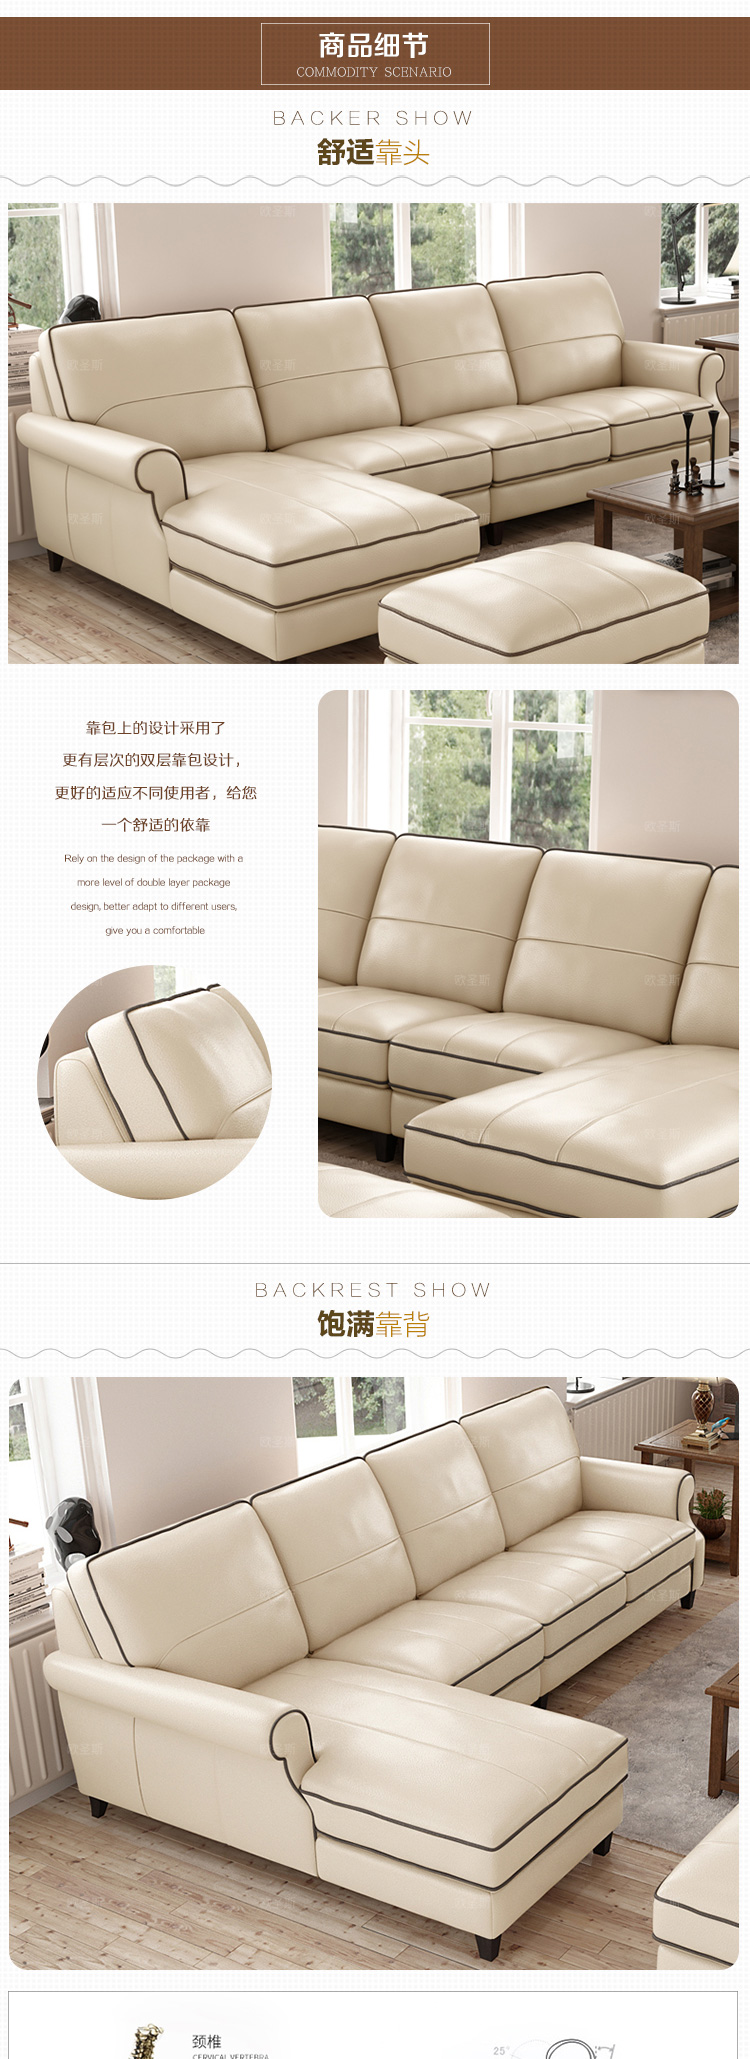 Enjoyable Us 1092 5 5 Off 2019 Valencia Nubuck Leather Sofa American Style Leather Sofa Sectional High Wood Legs Leather Sofa Set F75L In Living Room Sofas Ocoug Best Dining Table And Chair Ideas Images Ocougorg